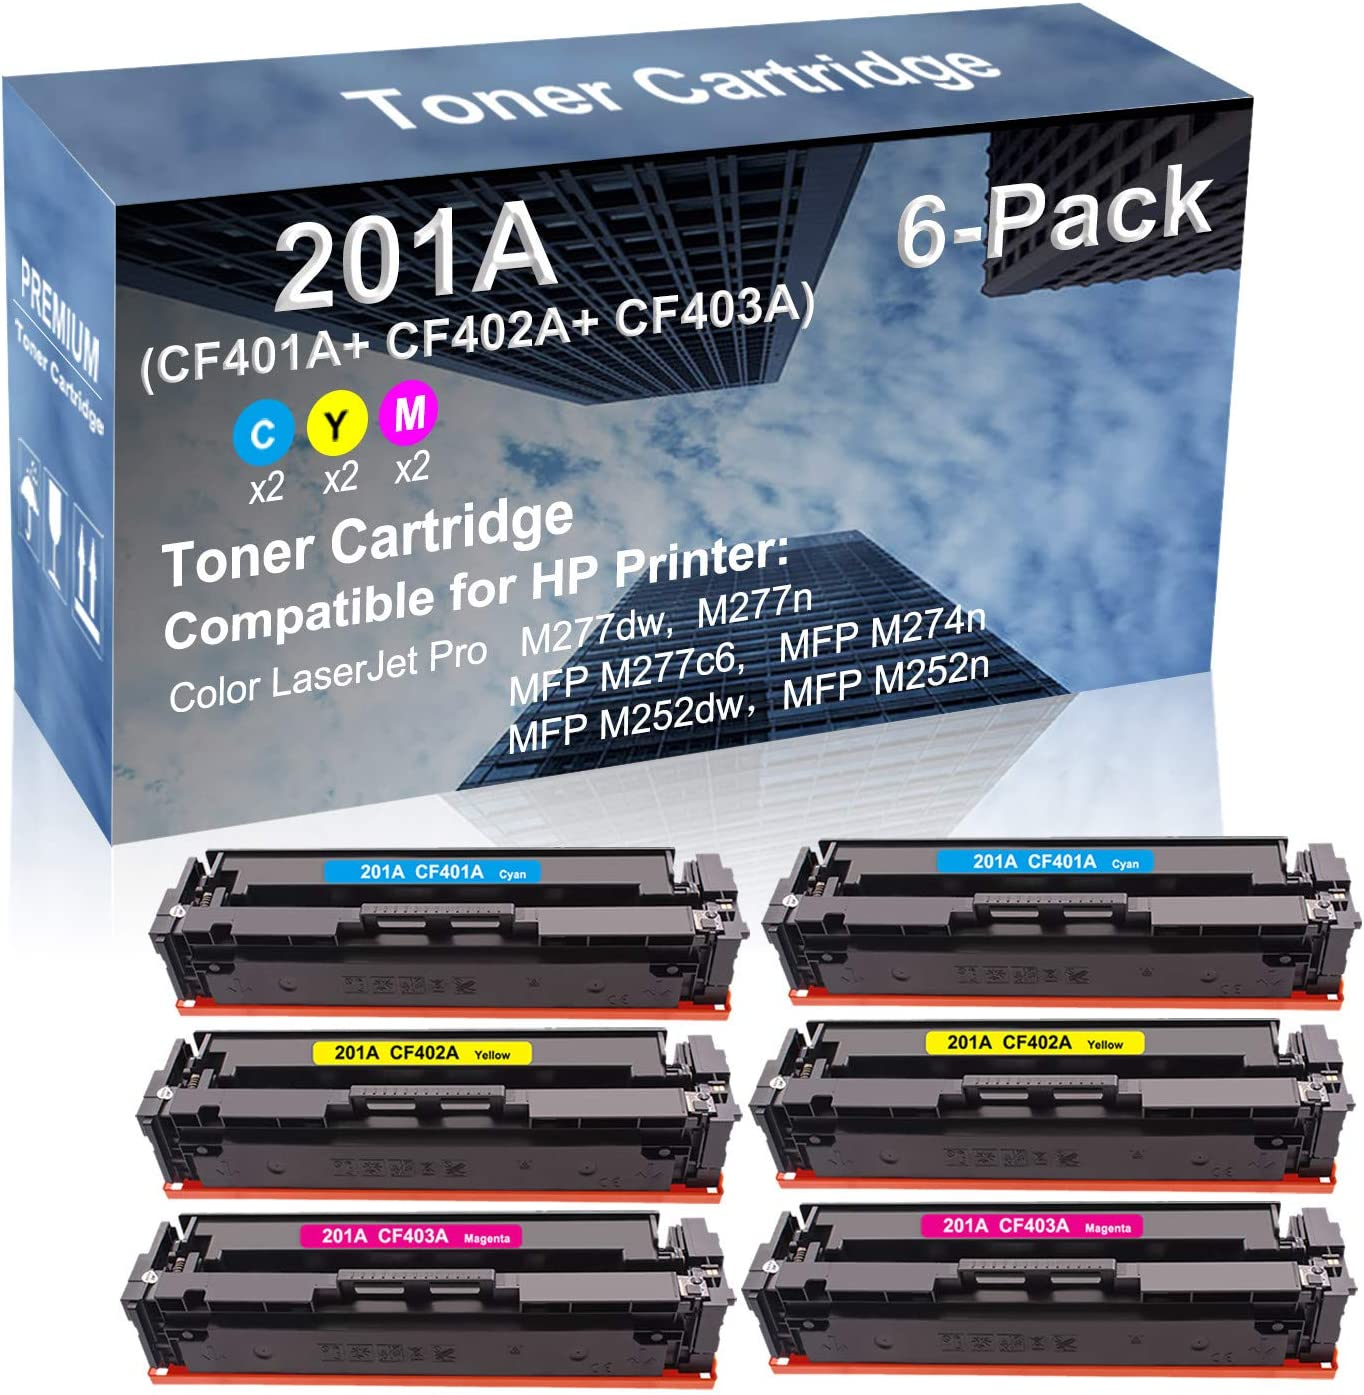 6-Pack (2C+2Y+2M) Compatible High Yield 201A (CF401A+ CF402A+ CF403A) Laser Printer Toner Cartridge use for HP MFP M252dw, MFP M252n Printer